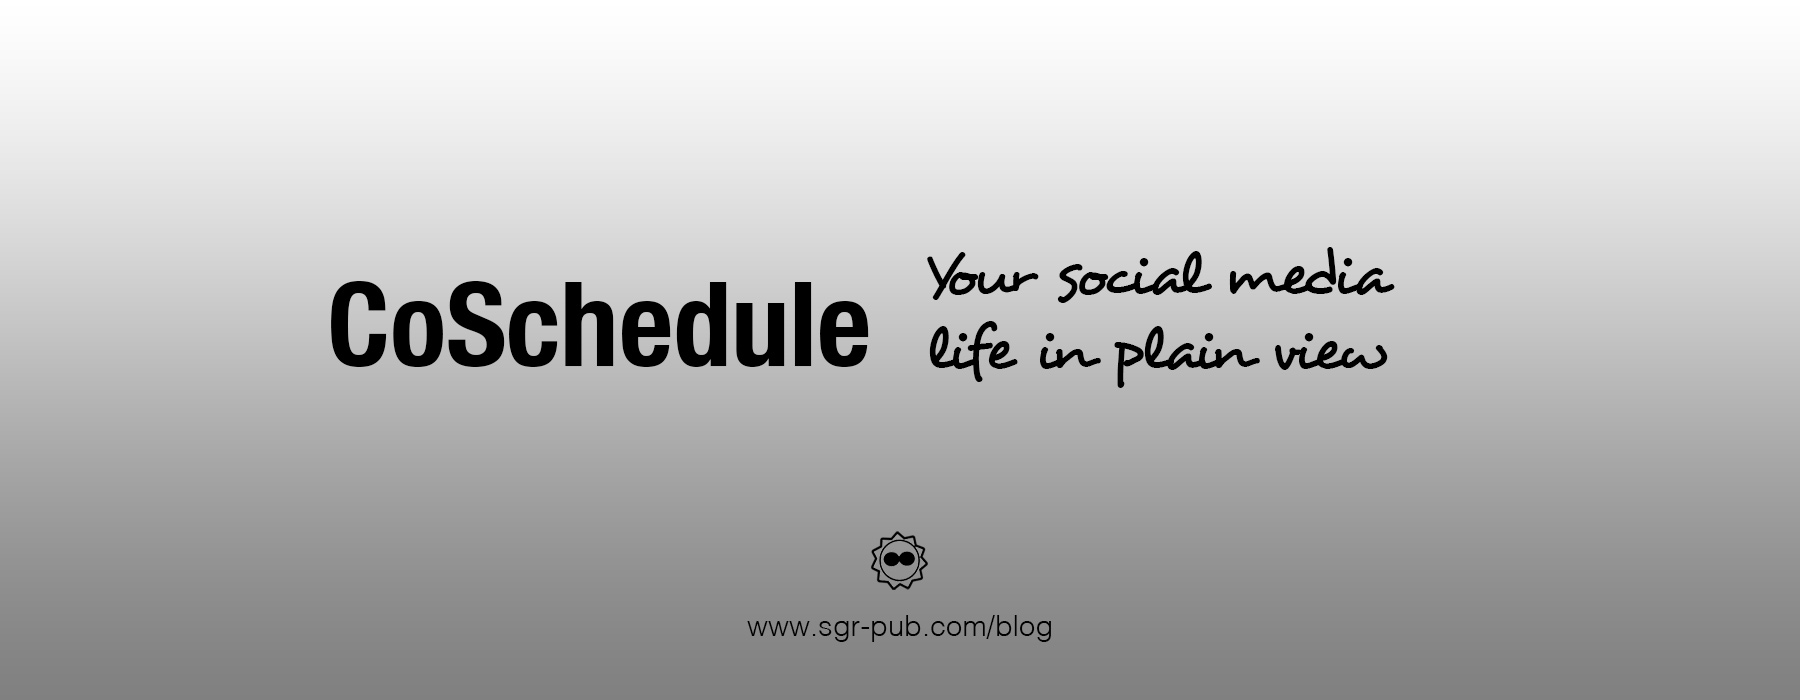 CoSchedule - Your social media life in plain view